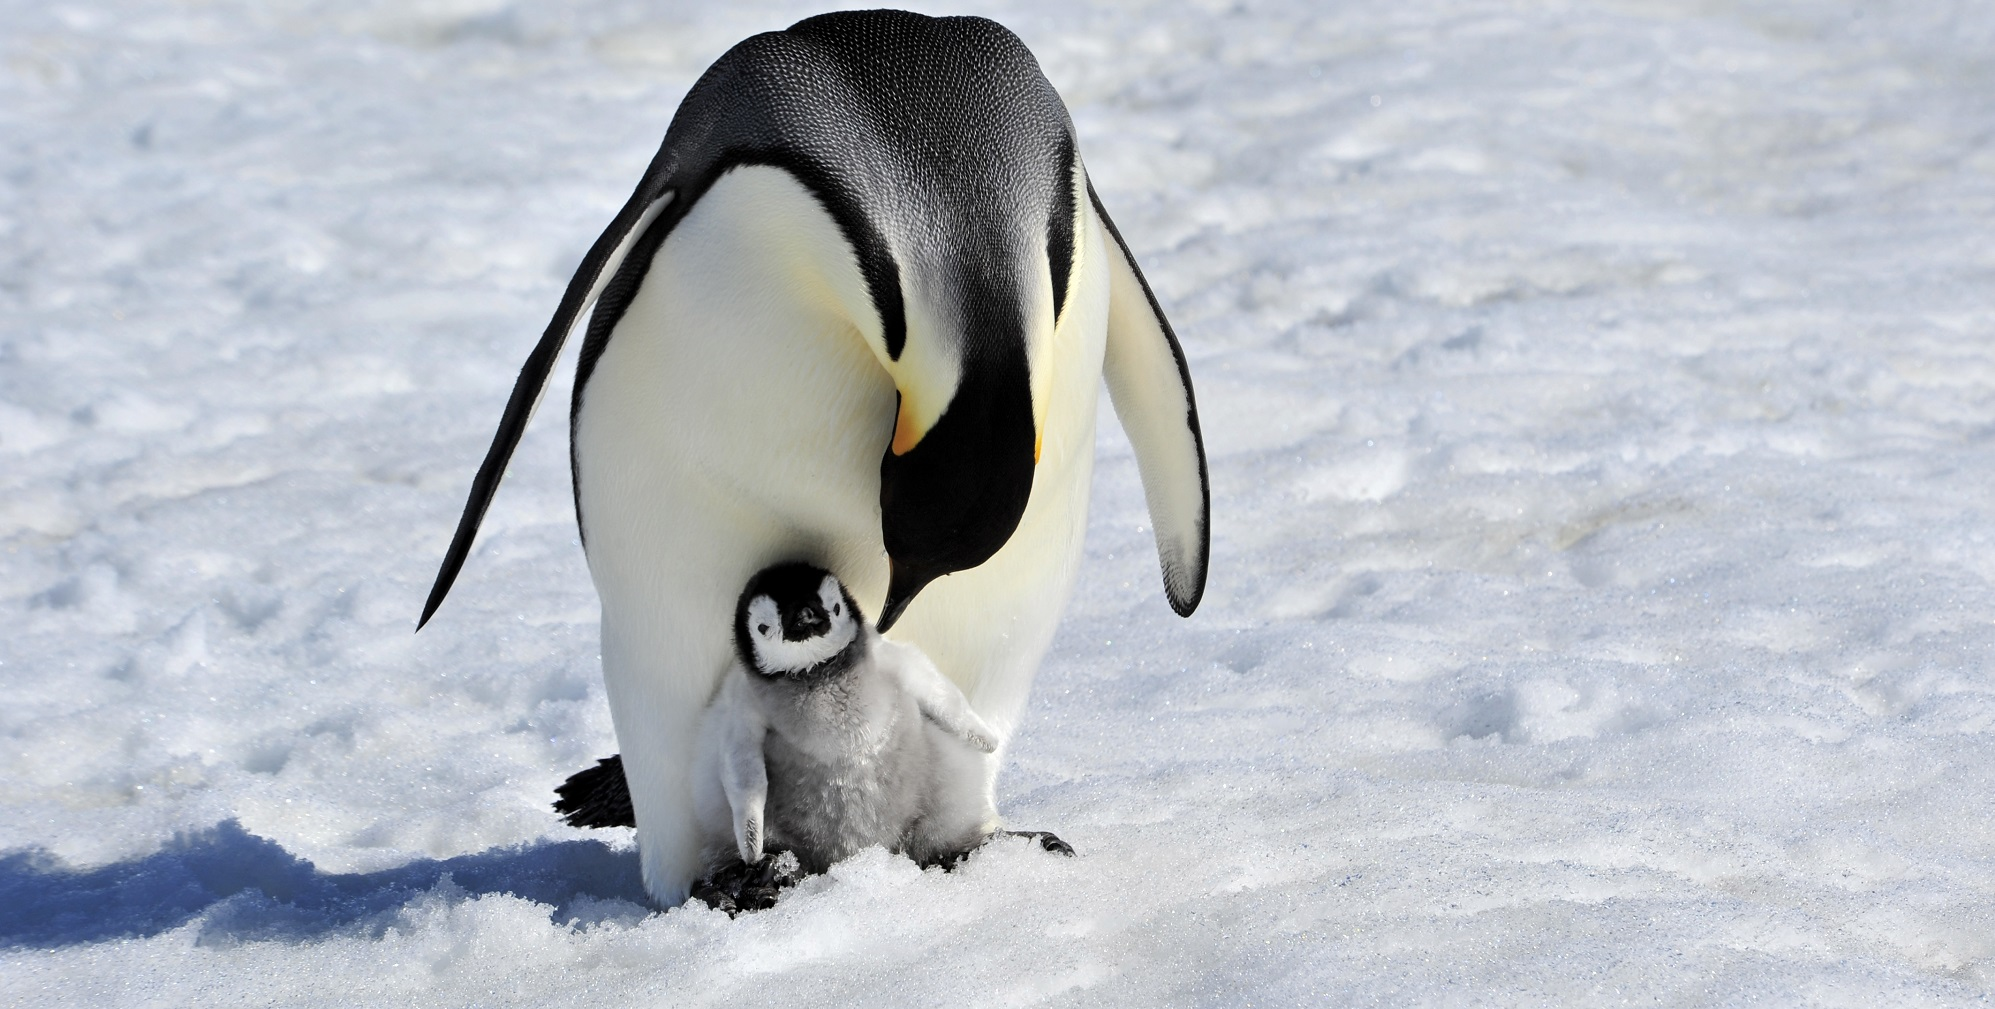 Penguin mother and child representing freezing eggs